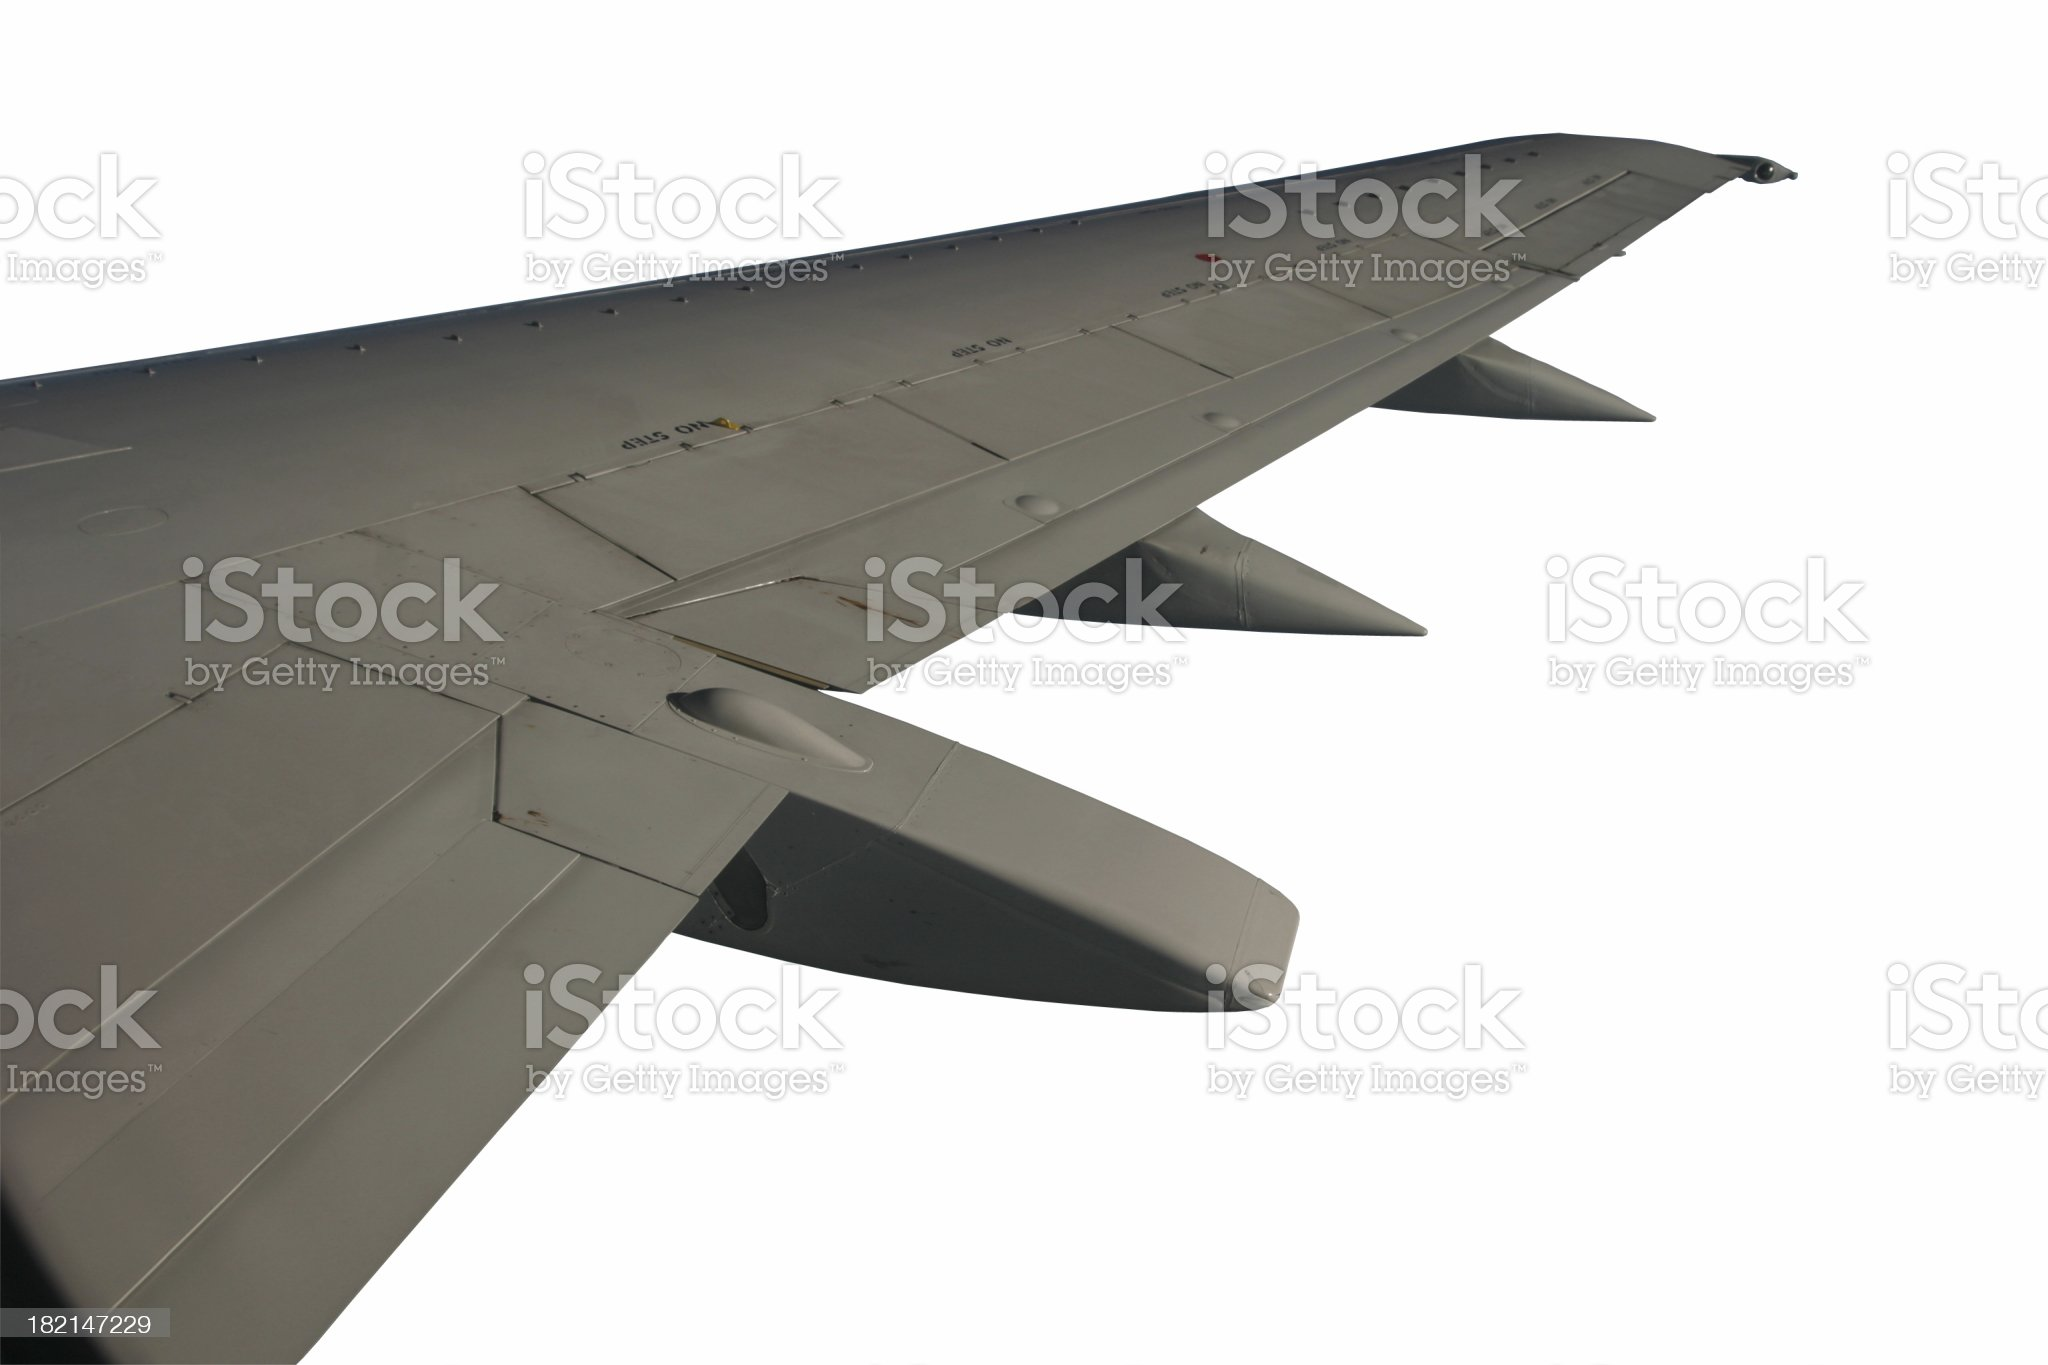 Aircraft wing isolated on white background royalty-free stock photo